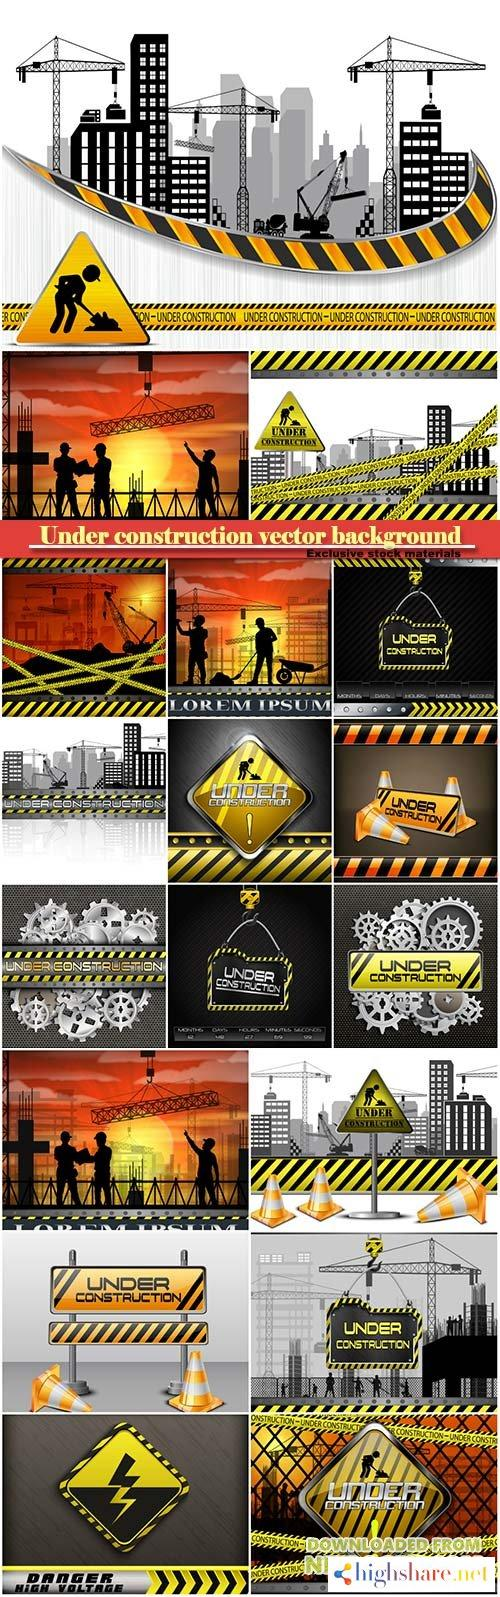 under construction vector background 5f40c90fedeb0 - Under construction vector background